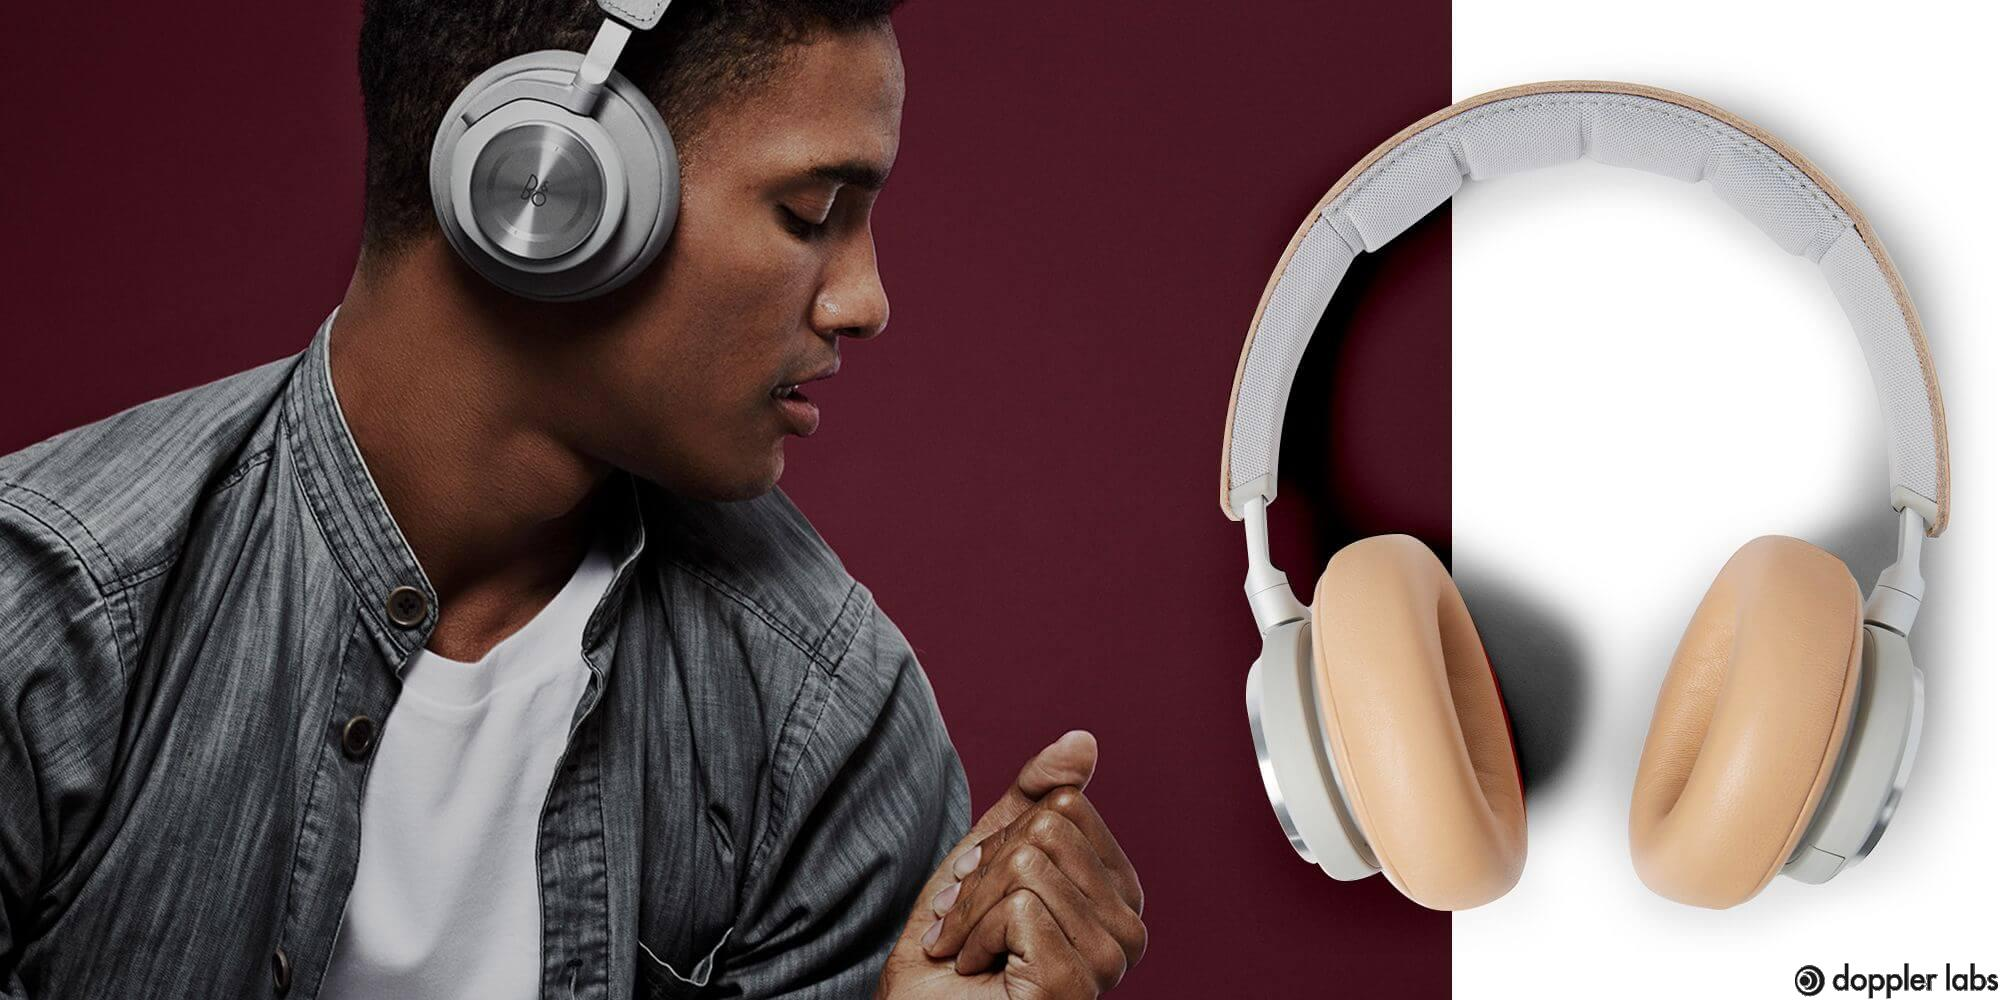 Use styling headphones might be a good idea